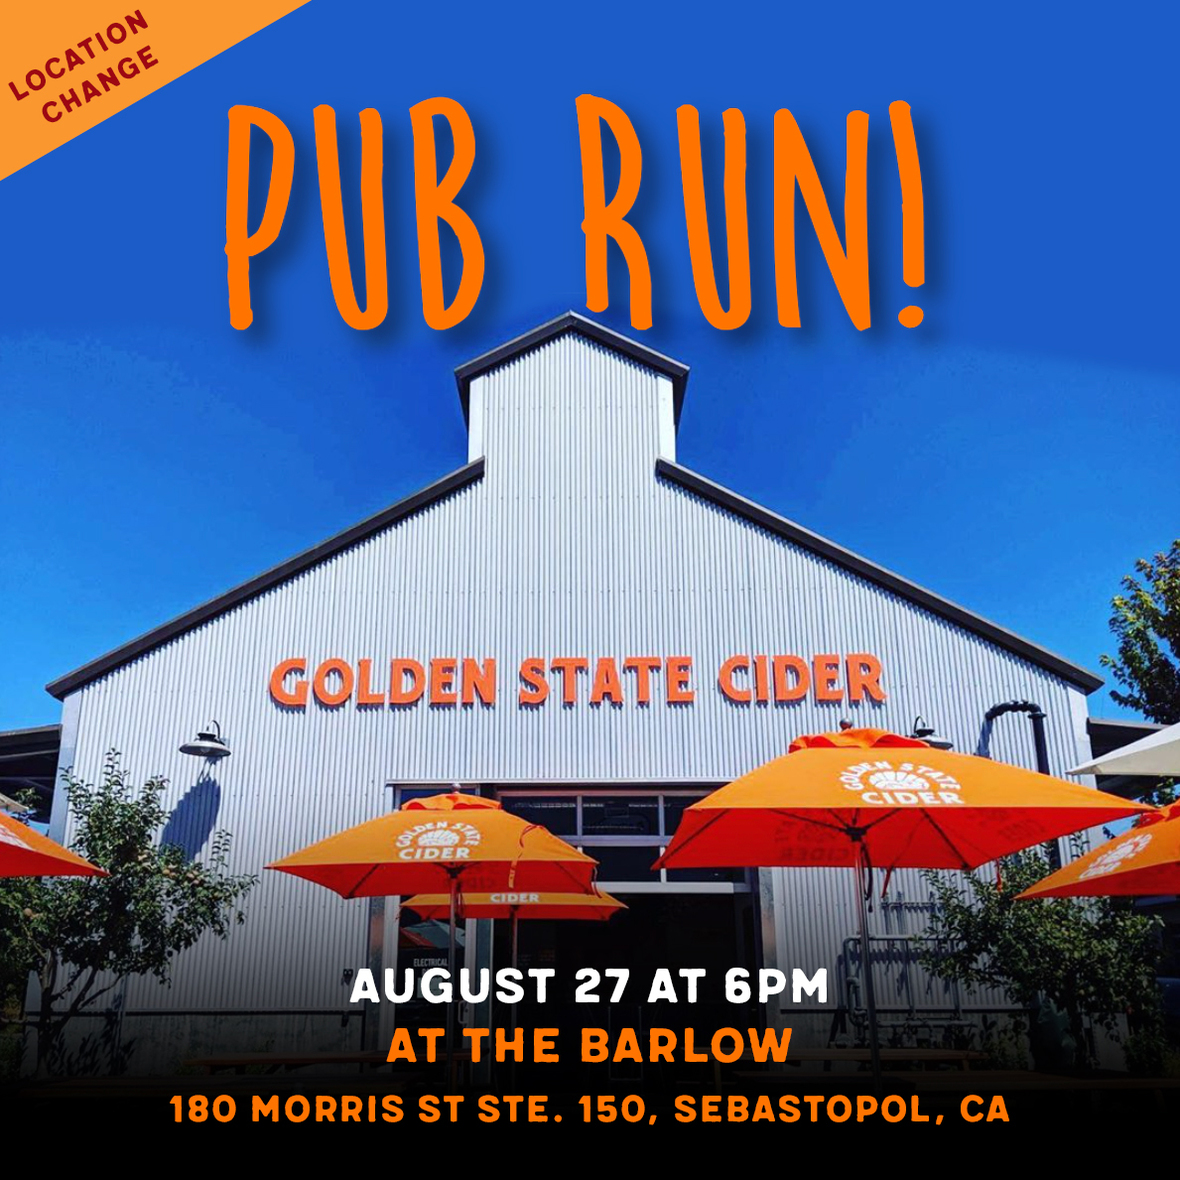 pub run aug 2019 cider